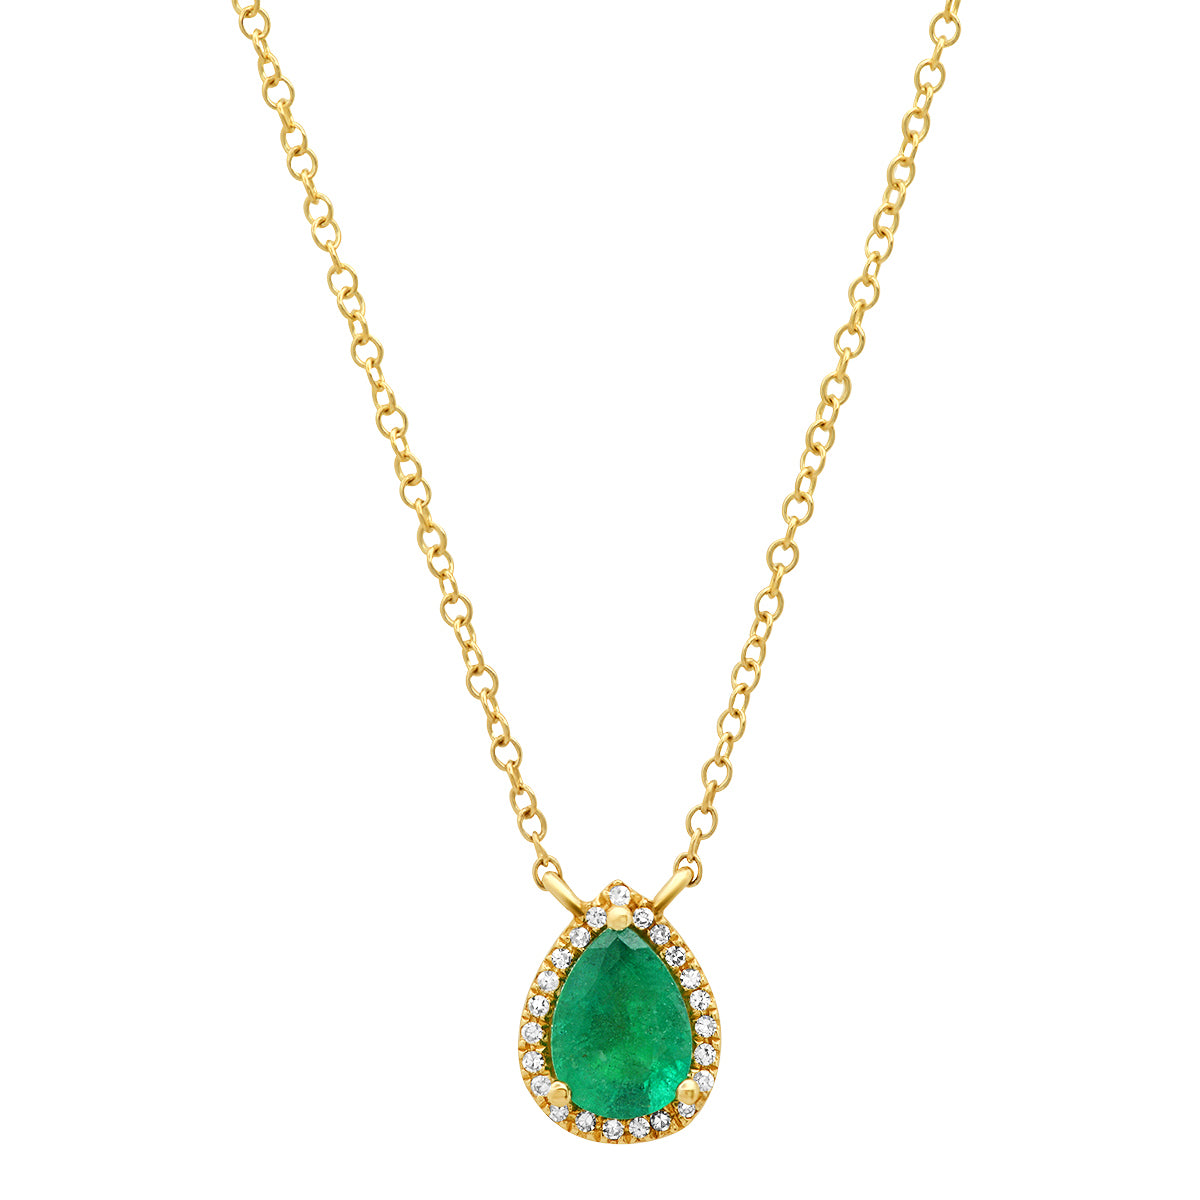 Pear Shape Green Emerald with Pave Diamond Frame Necklace